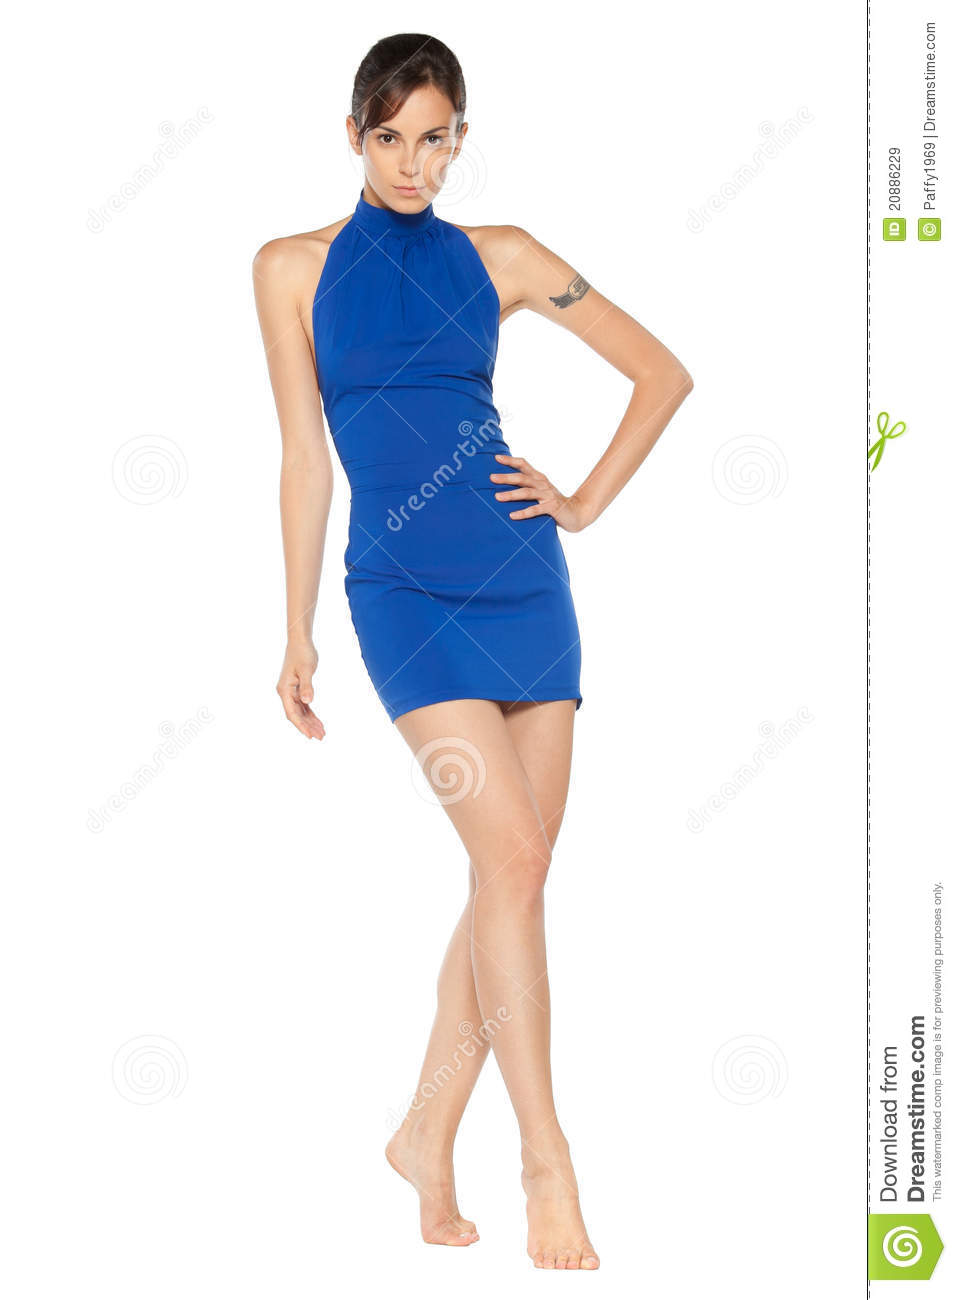 Female in blue dress posing